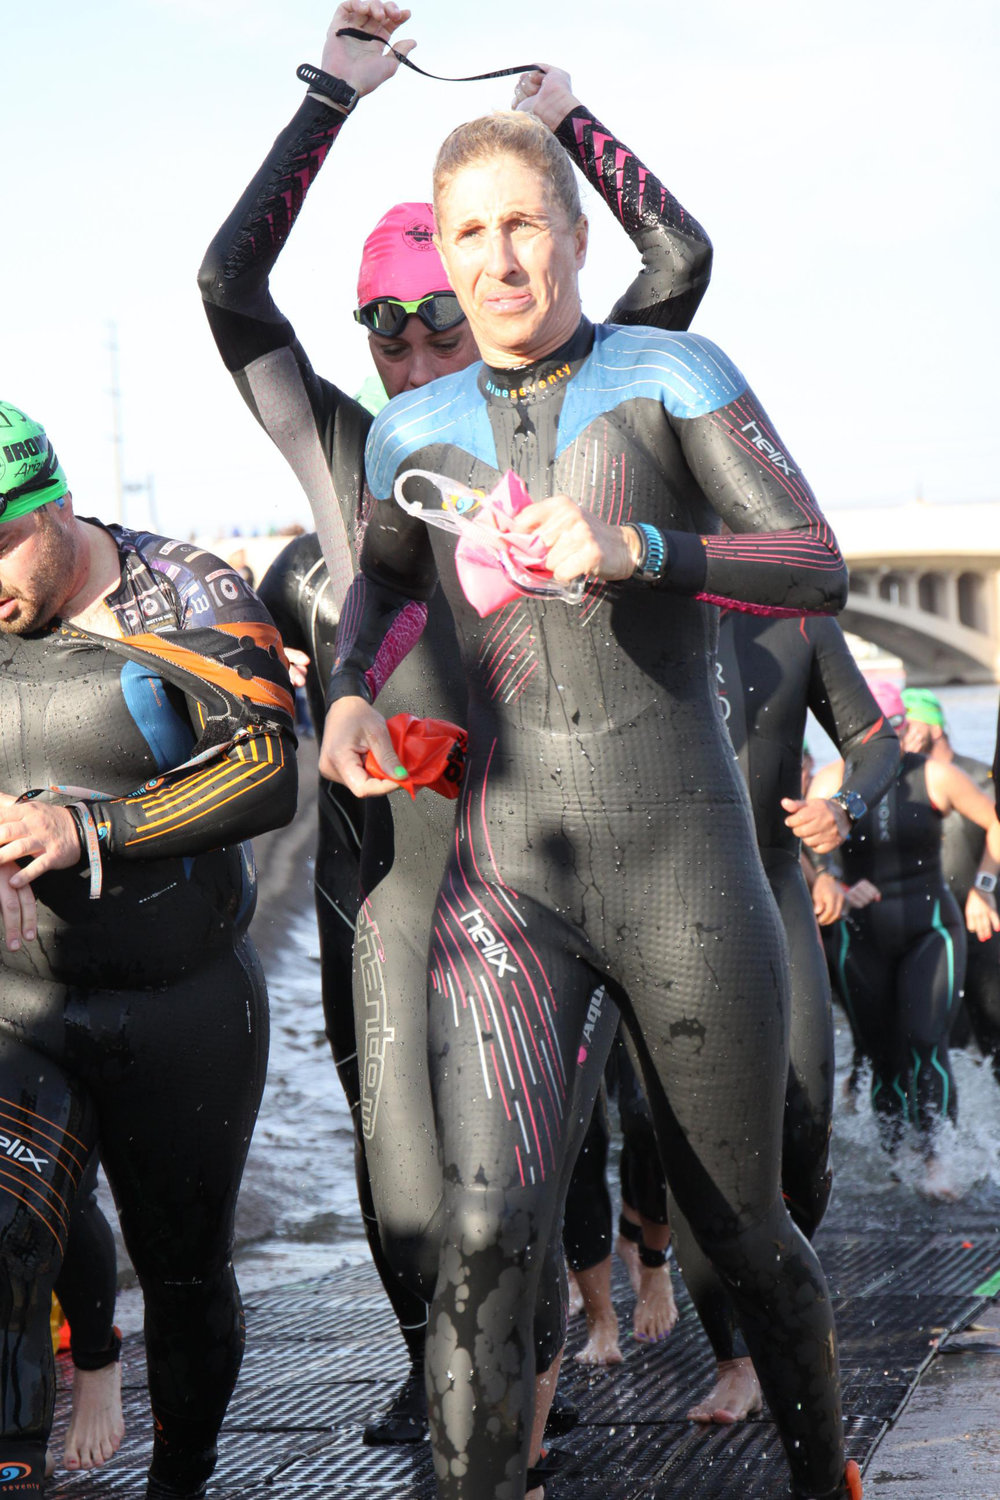 Coach_Terry_Wilson_Pursuit_of_The_Perfect_Race_IRONMAN_Arizona_Rebecca_McKee_3.jpg